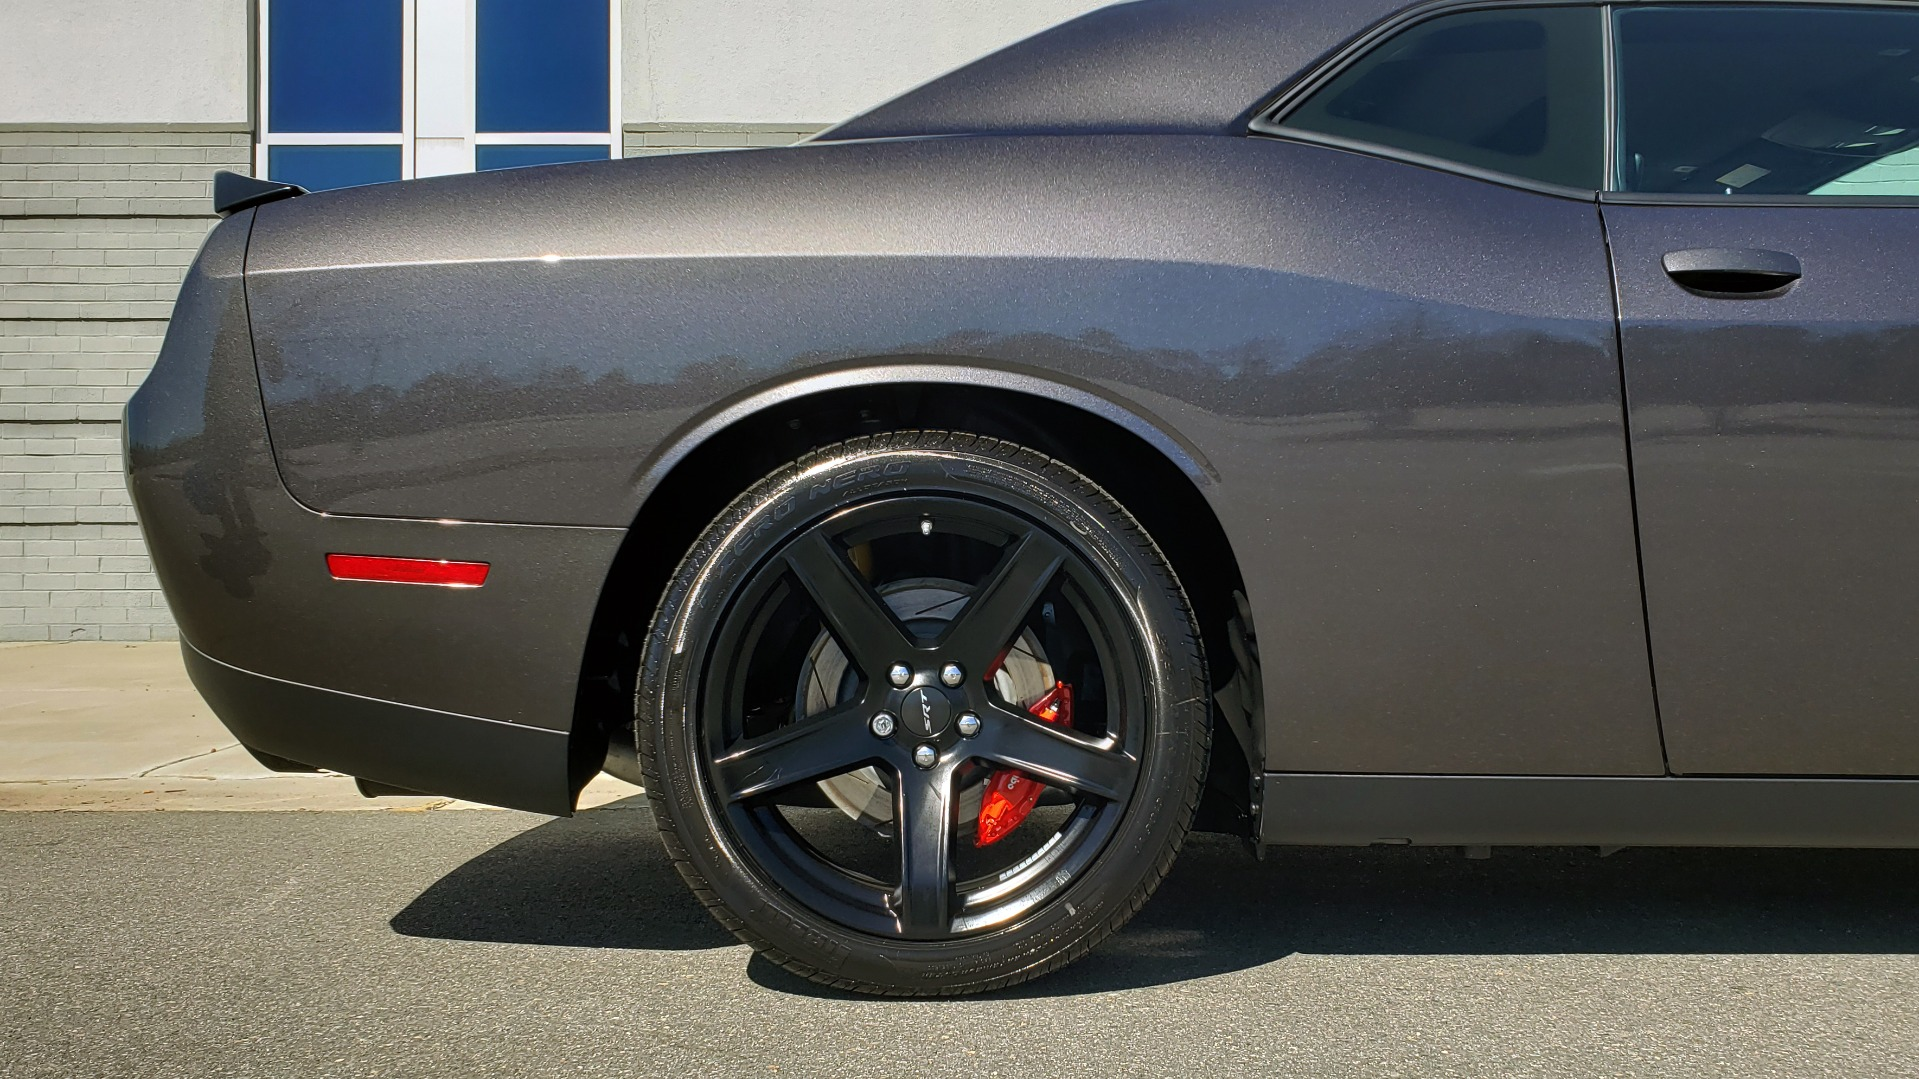 Used 2020 Dodge CHALLENGER SRT HELLCAT (717HP) / NAV / AUTO / CLOTH / REARVIEW / LOW MILES for sale $64,999 at Formula Imports in Charlotte NC 28227 79